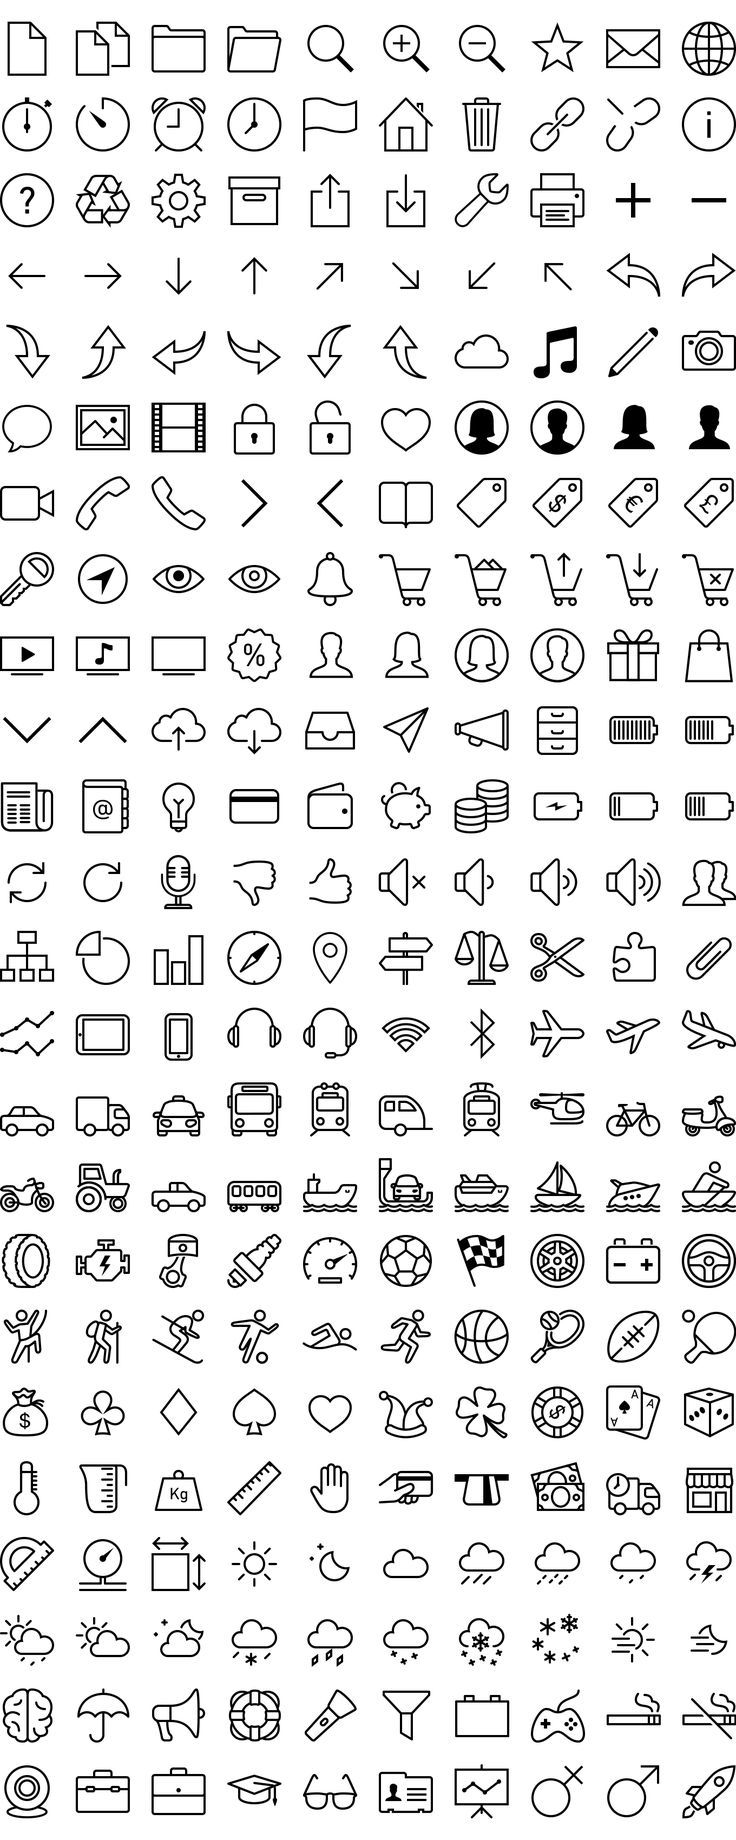 Free iOS 7 icons in vector by VisualPharm (source http